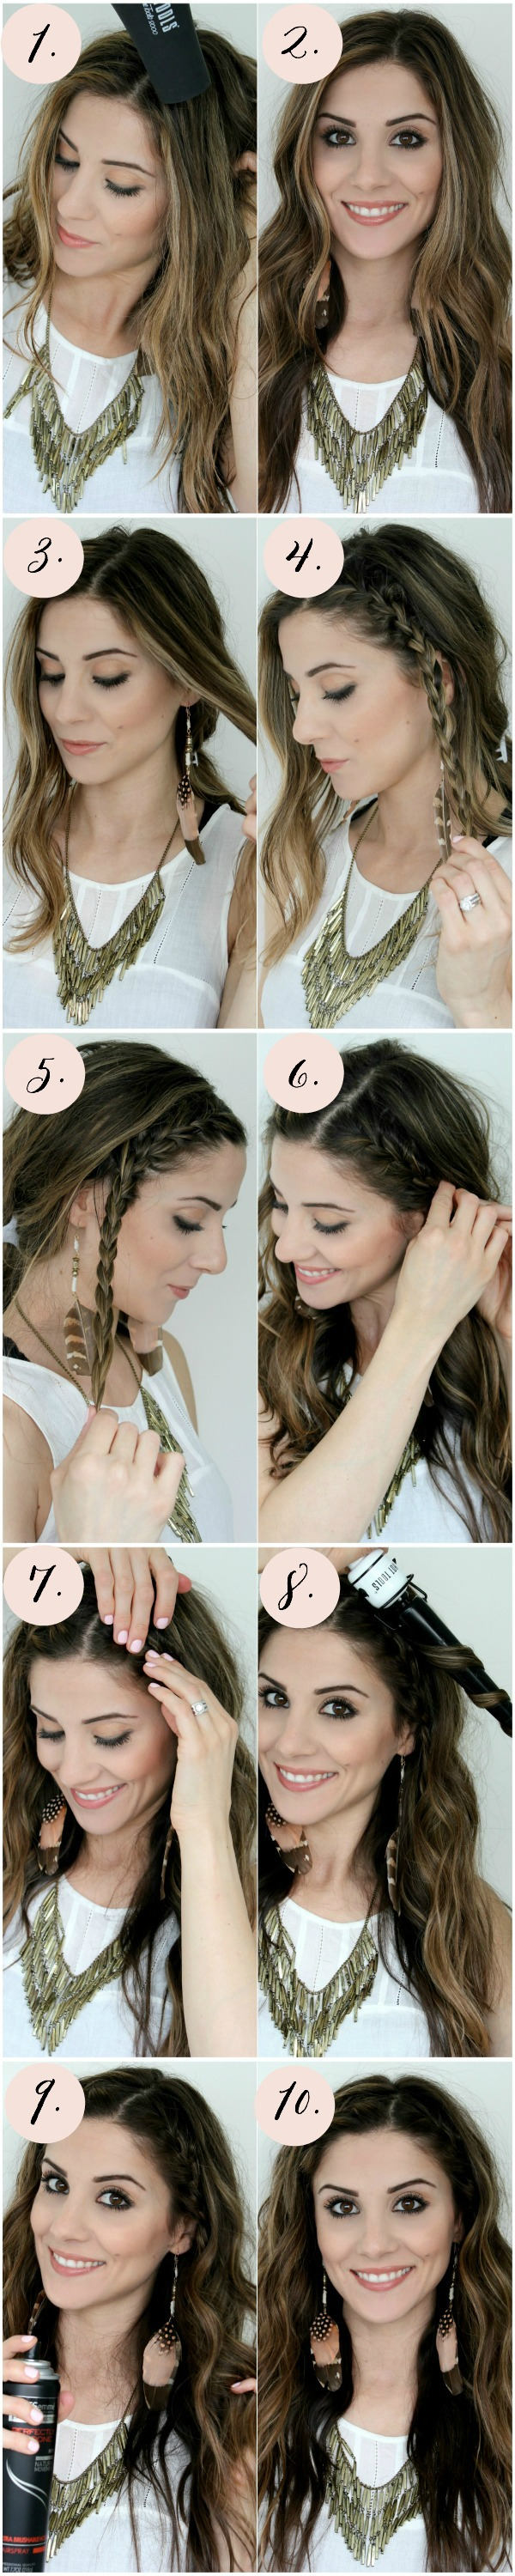 Boho, Festival Inspired Hair Tutorial